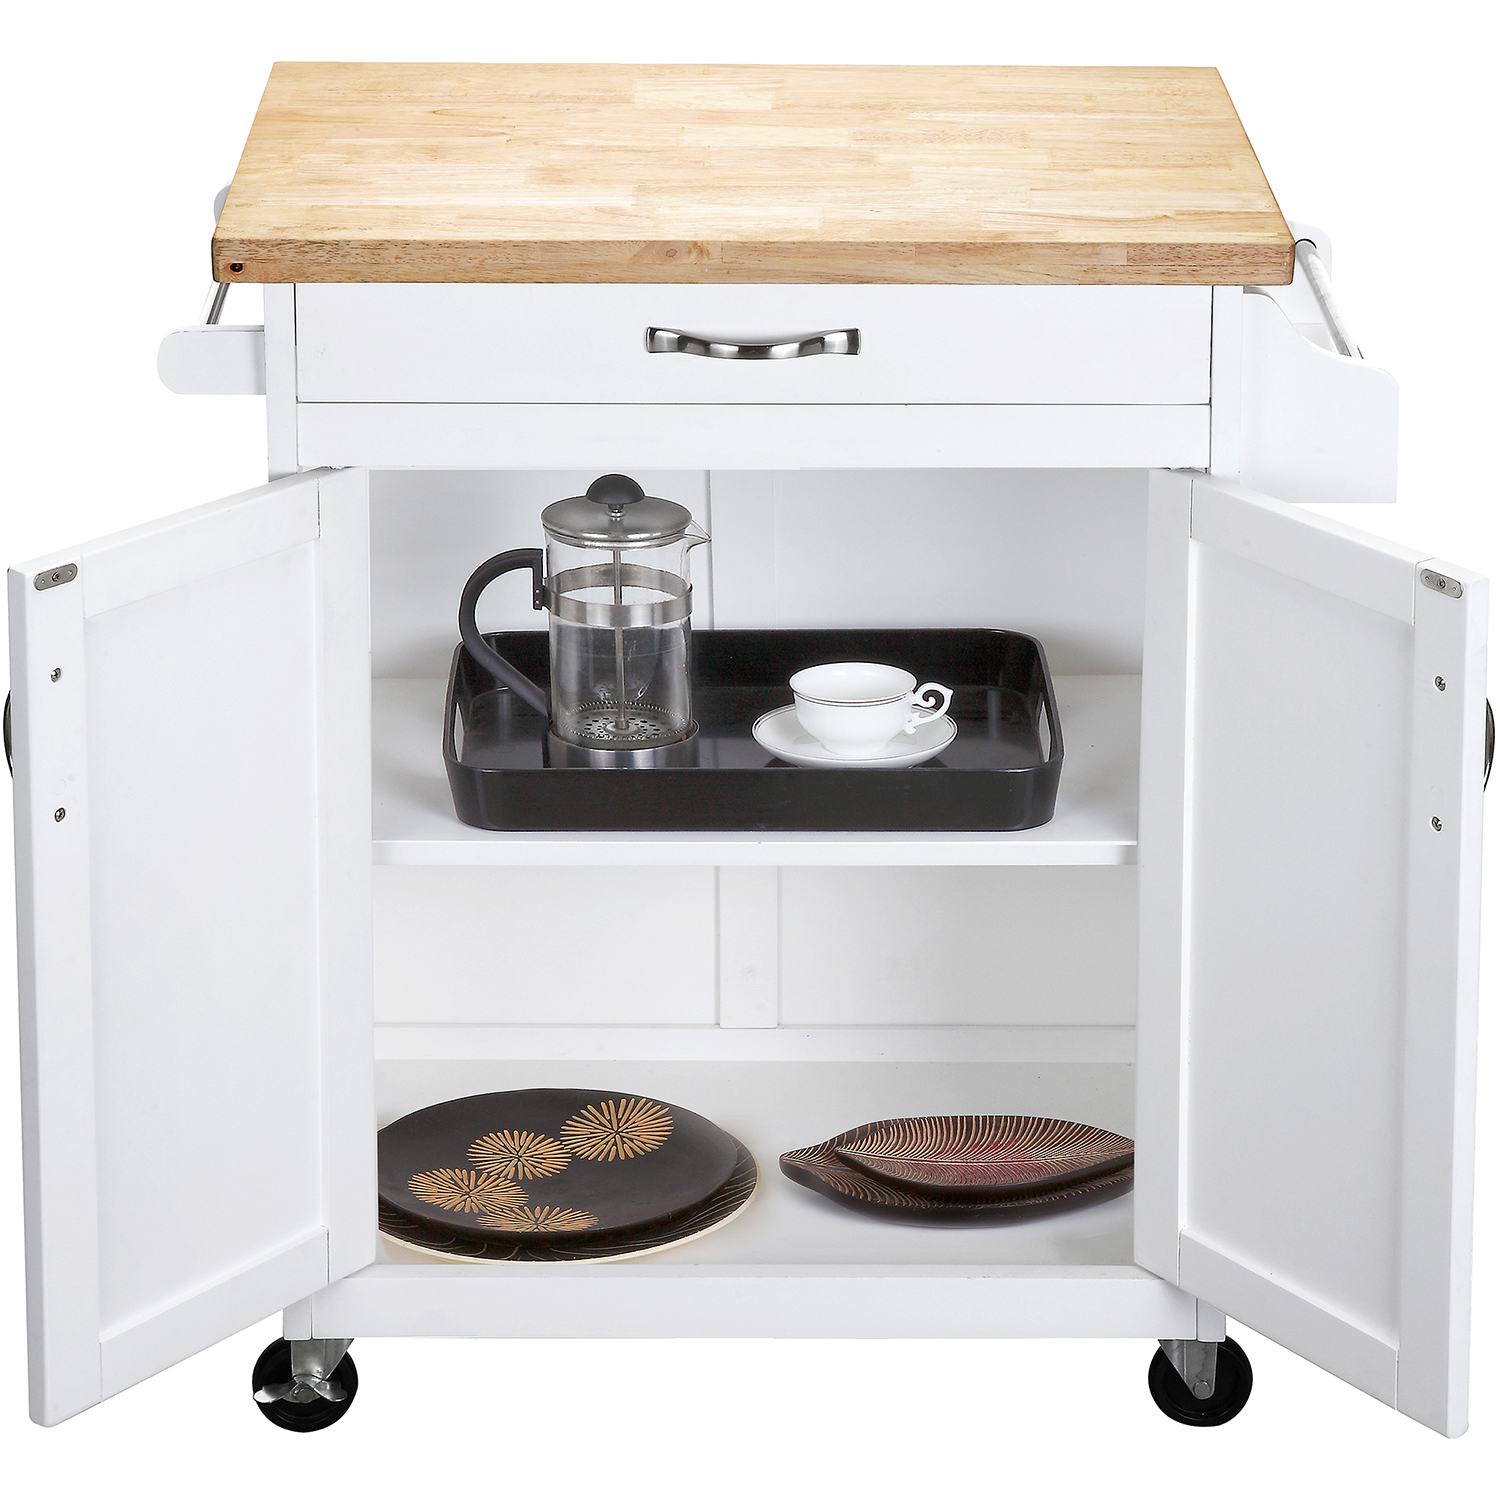 Mainstays Kitchen Island Cart with Drawer and Storage Shelves, White